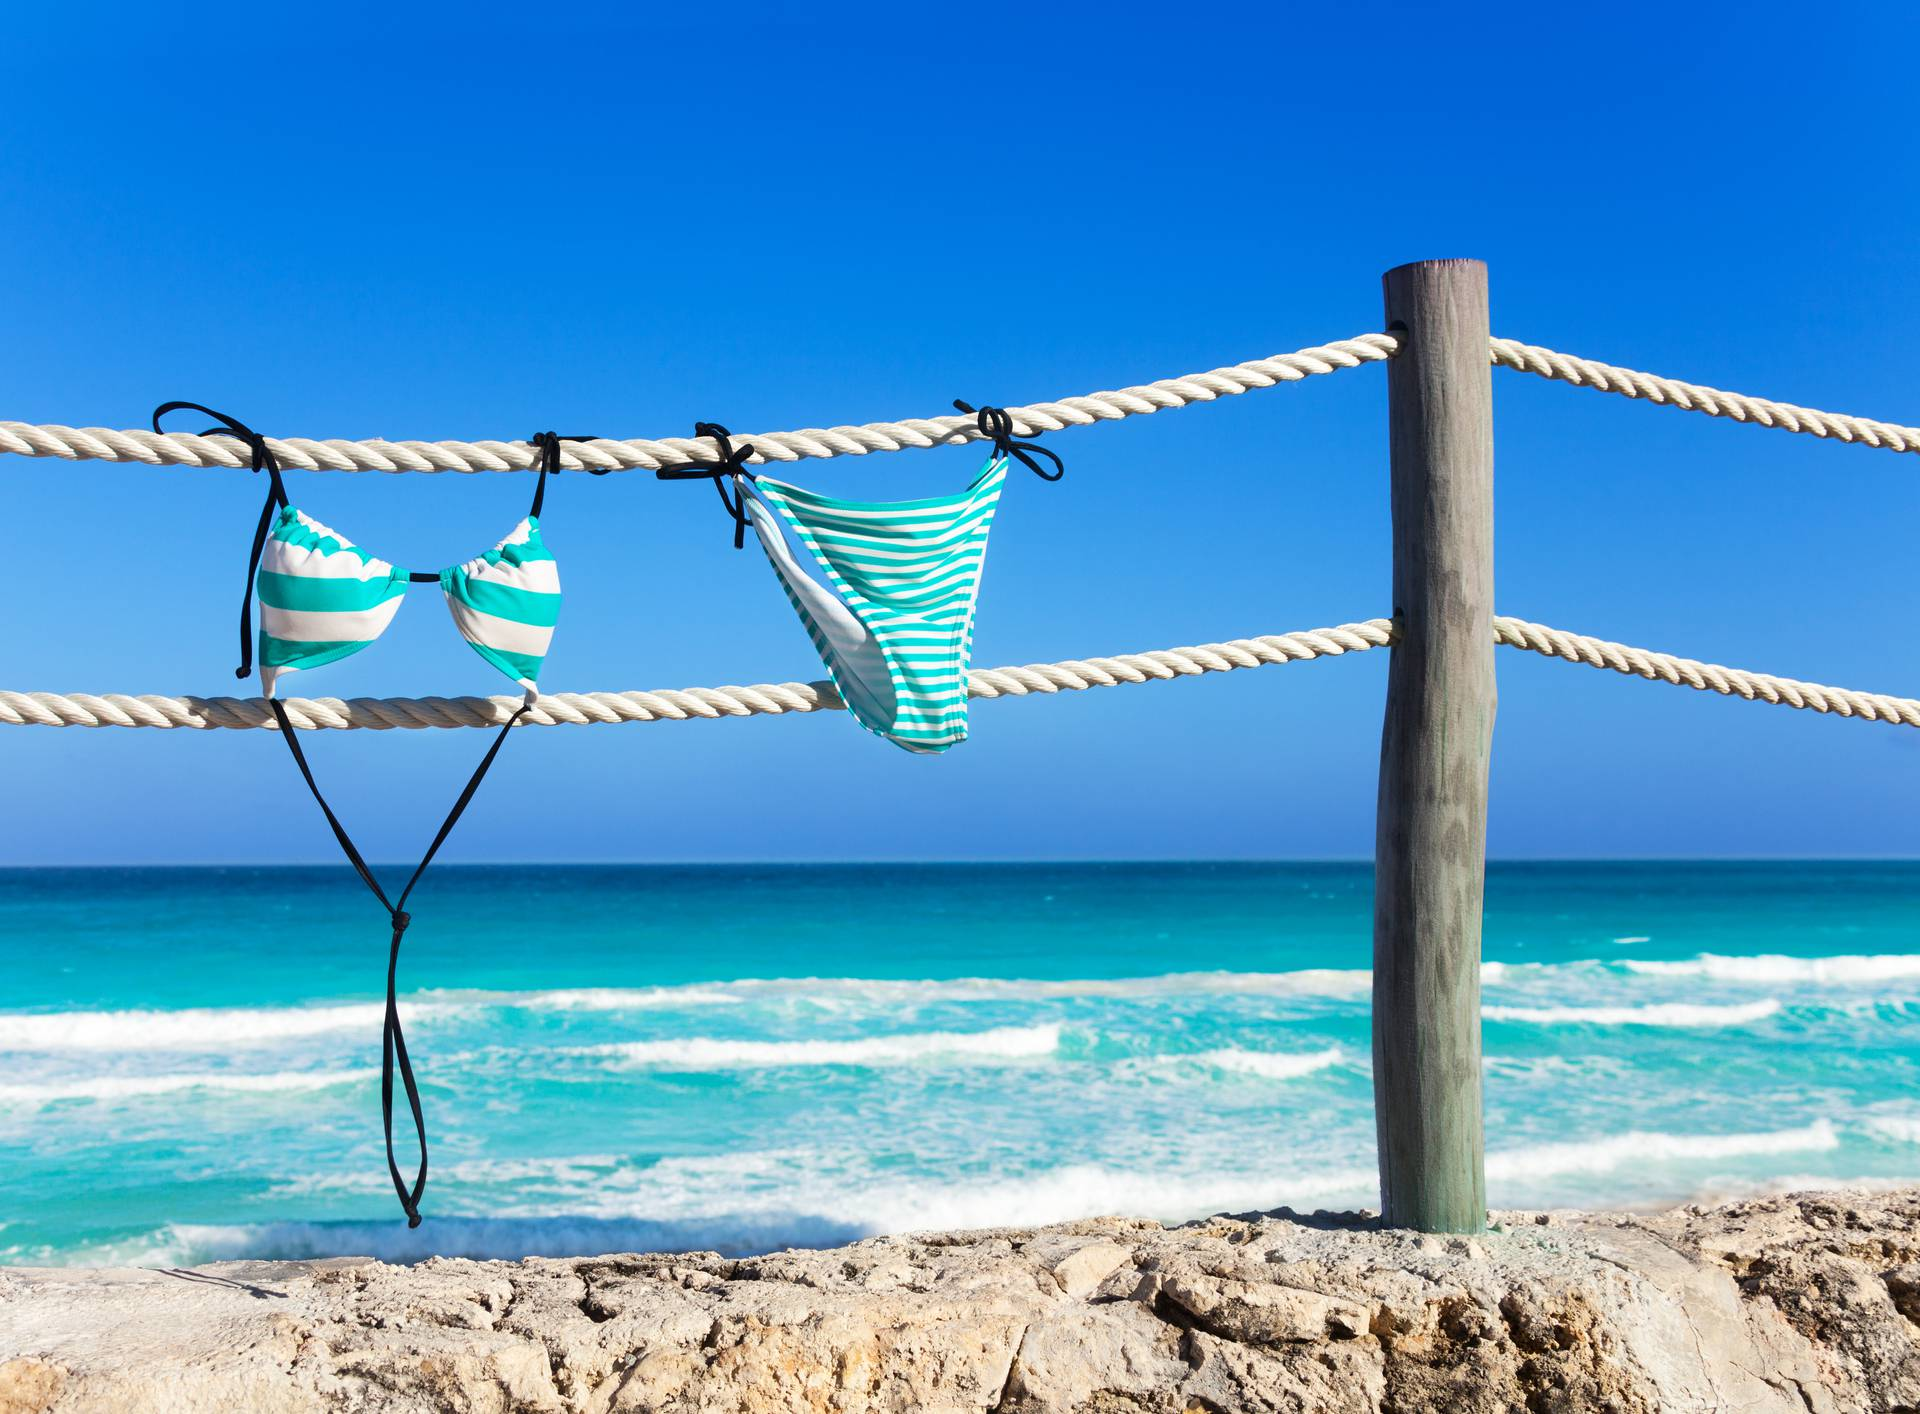 Blue woman's swimming suit hanging on white ropes